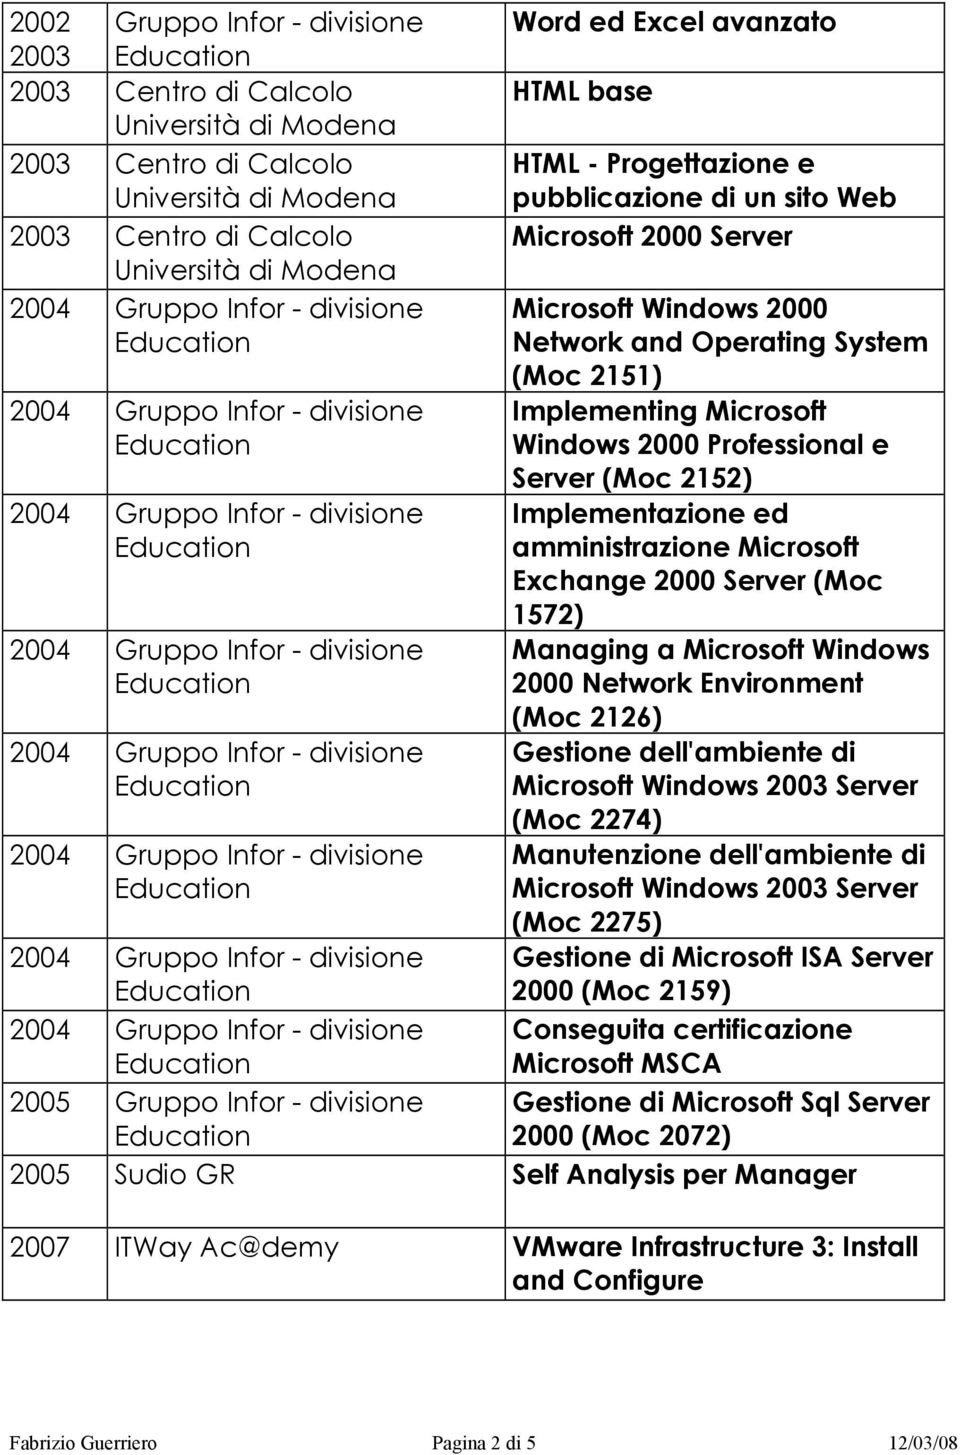 Environment (Moc 2126) Gestione dell'ambiente di Microsoft Windows 2003 Server (Moc 2274) Manutenzione dell'ambiente di Microsoft Windows 2003 Server (Moc 2275) Gestione di Microsoft ISA Server 2000